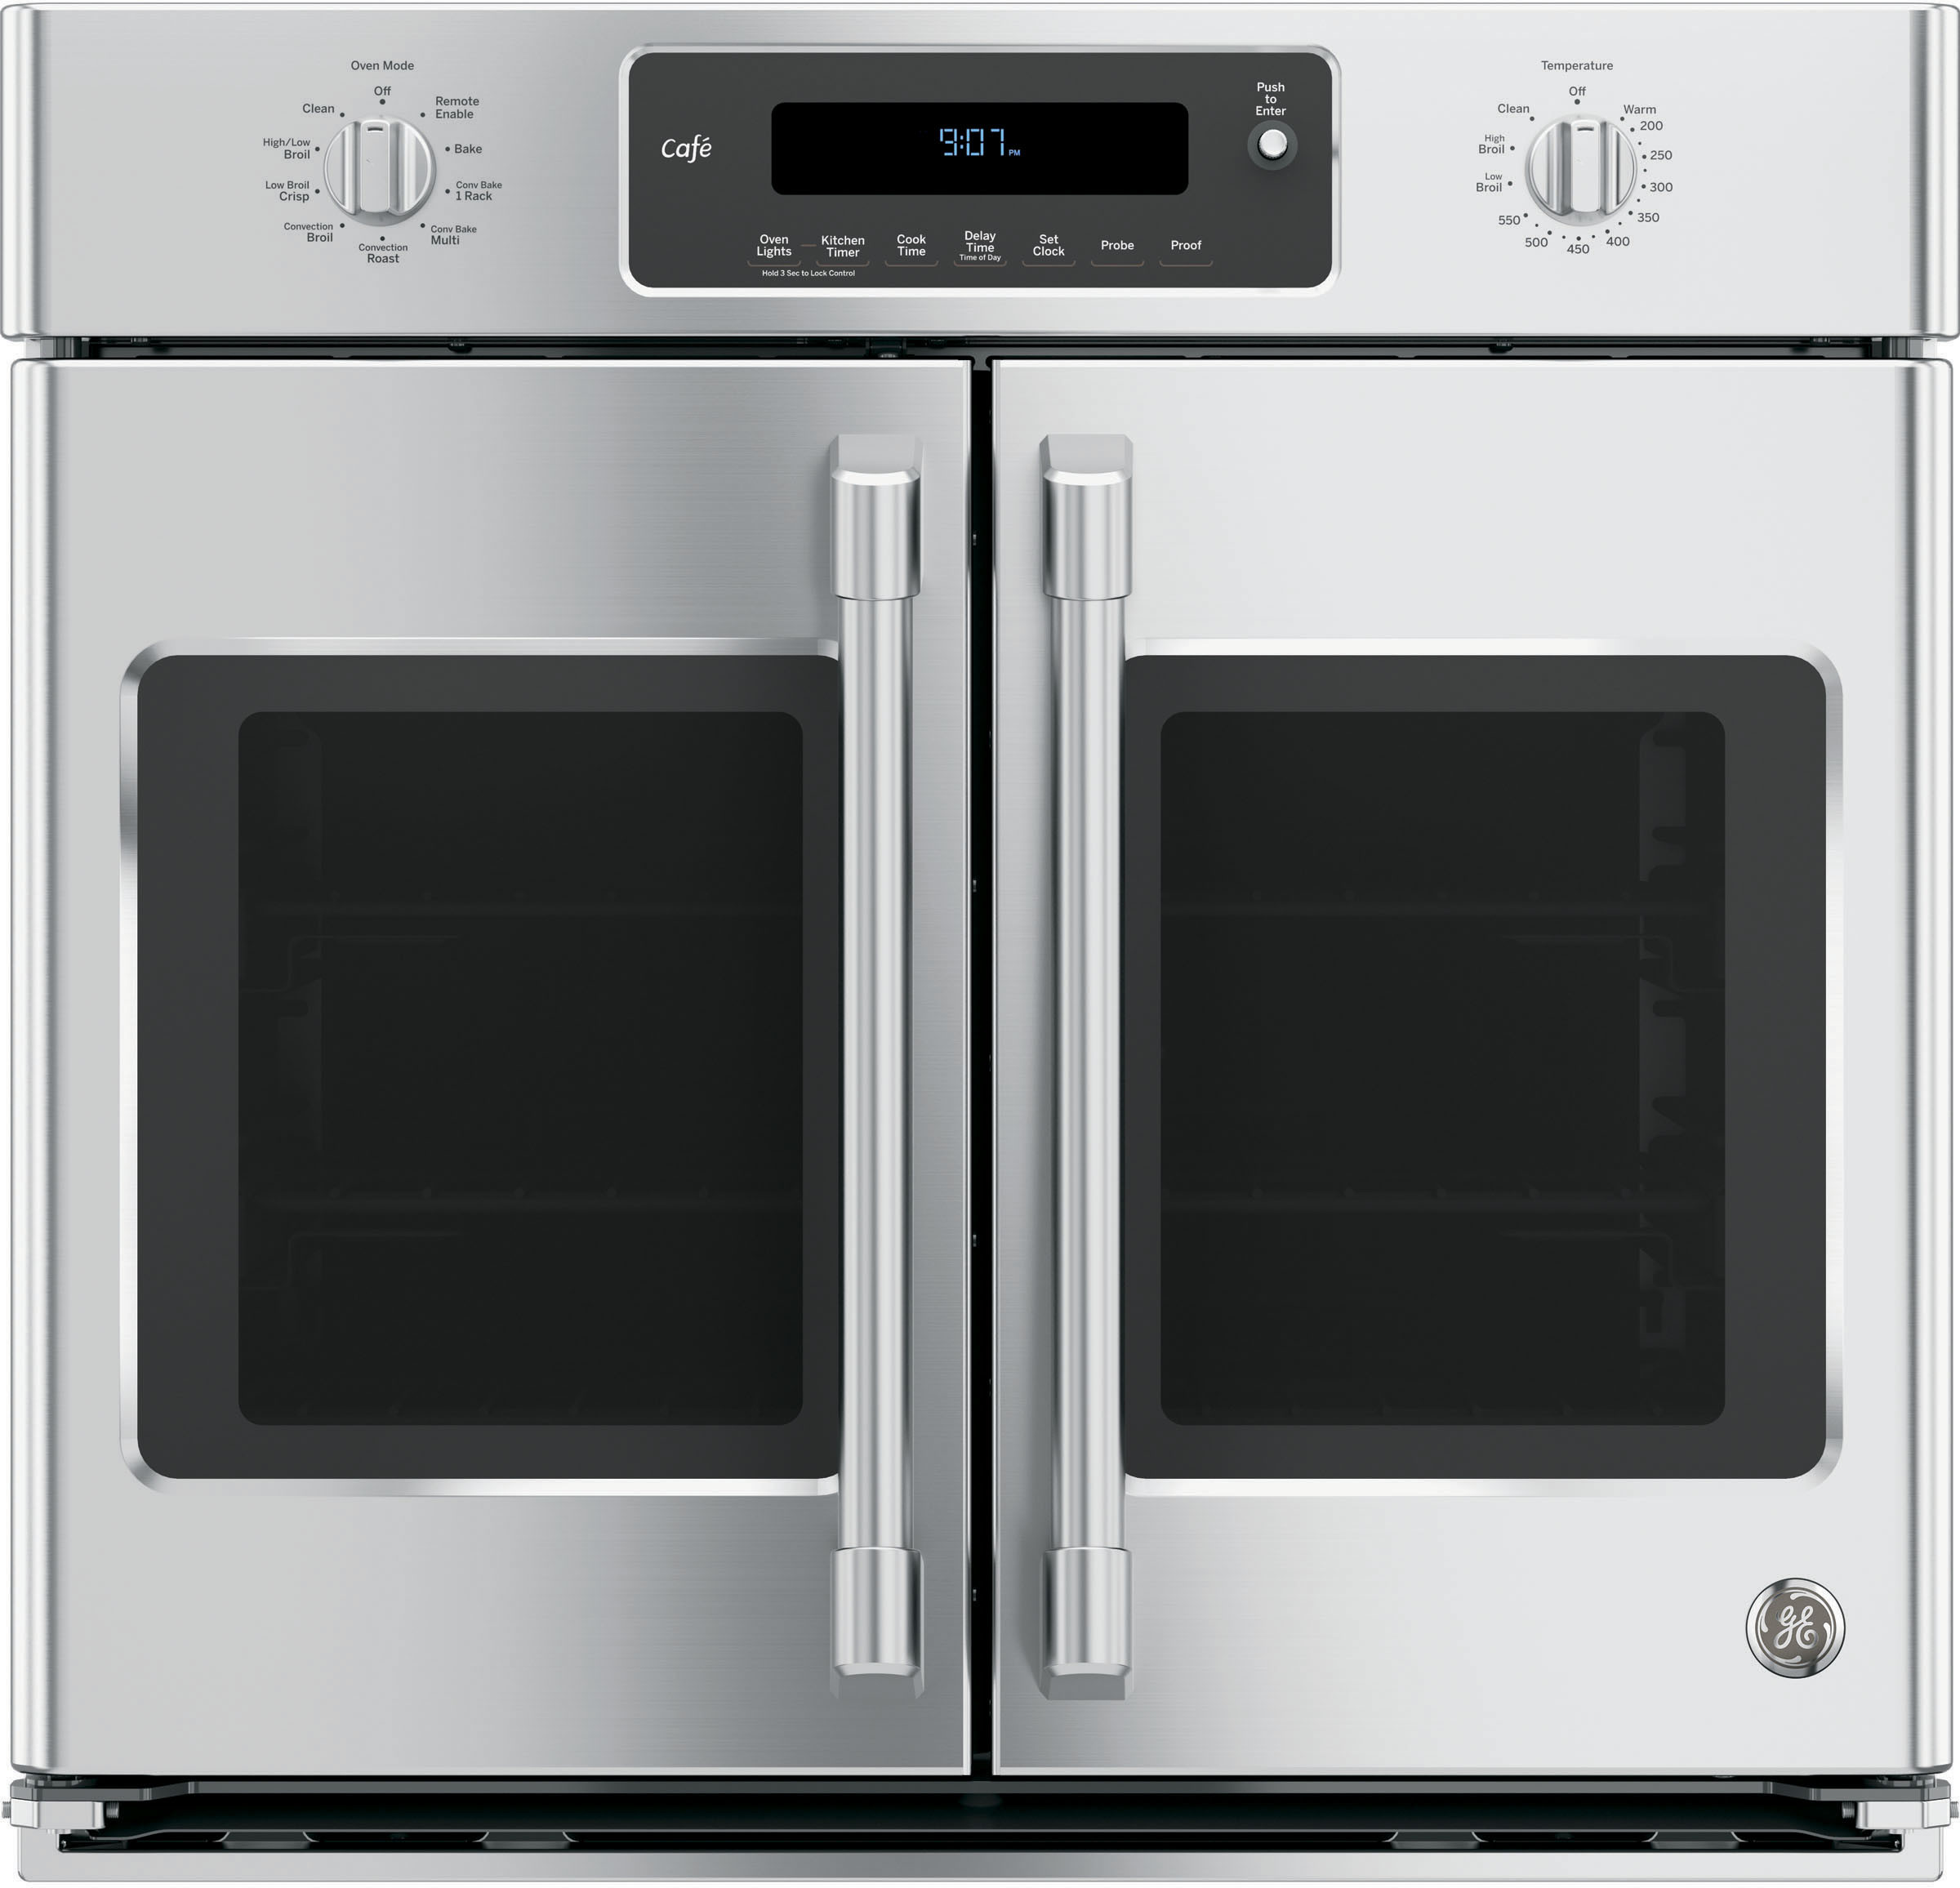 Electric Ovens For Sale Cafe 30 Inch Smart Single French Door Electric Wall Oven